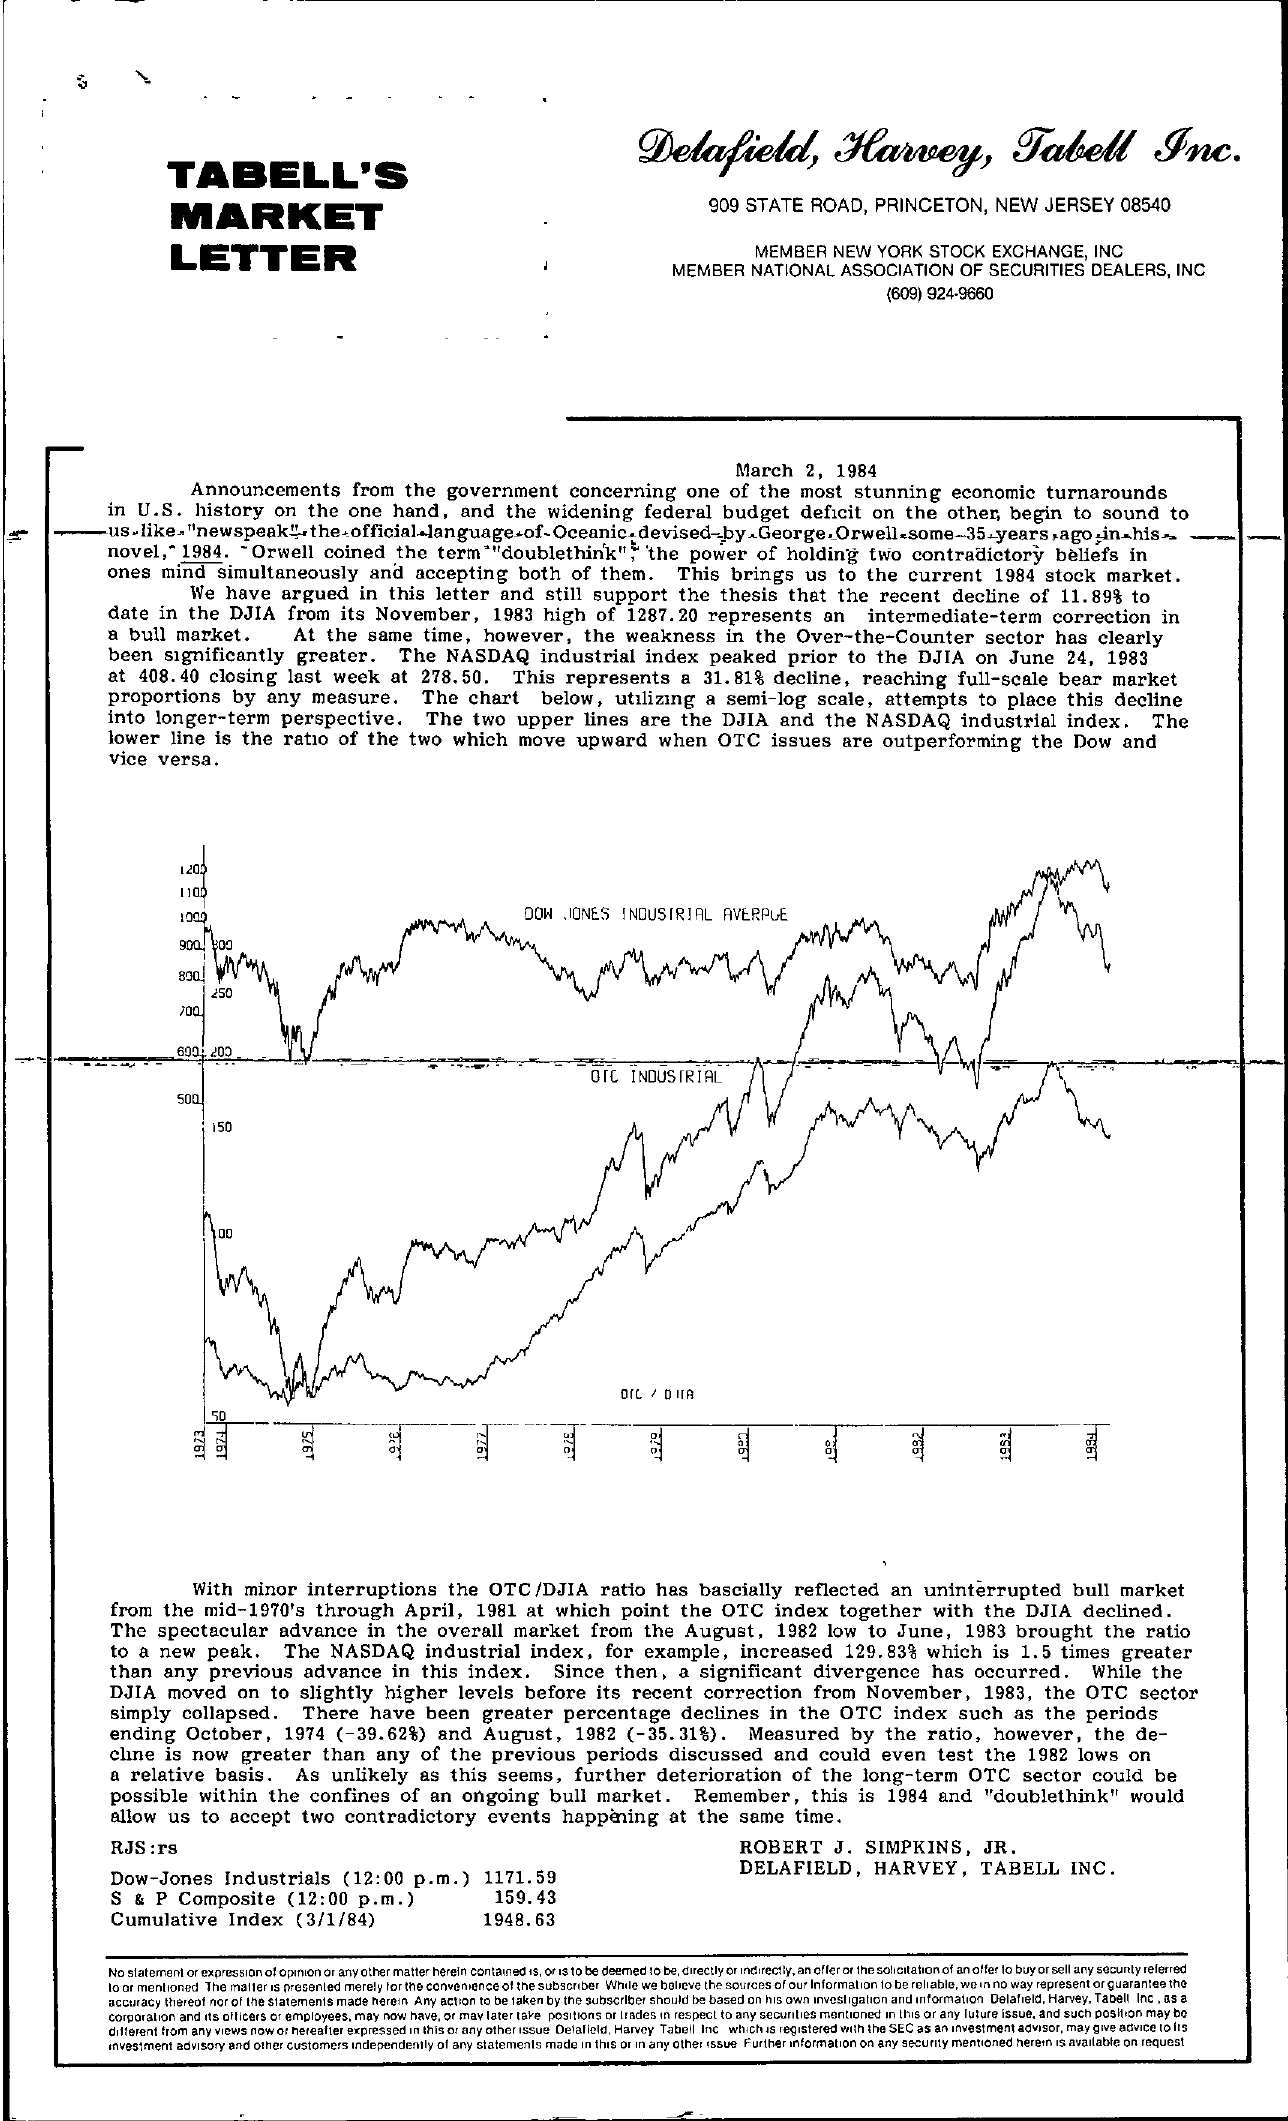 Tabell's Market Letter - March 02, 1984